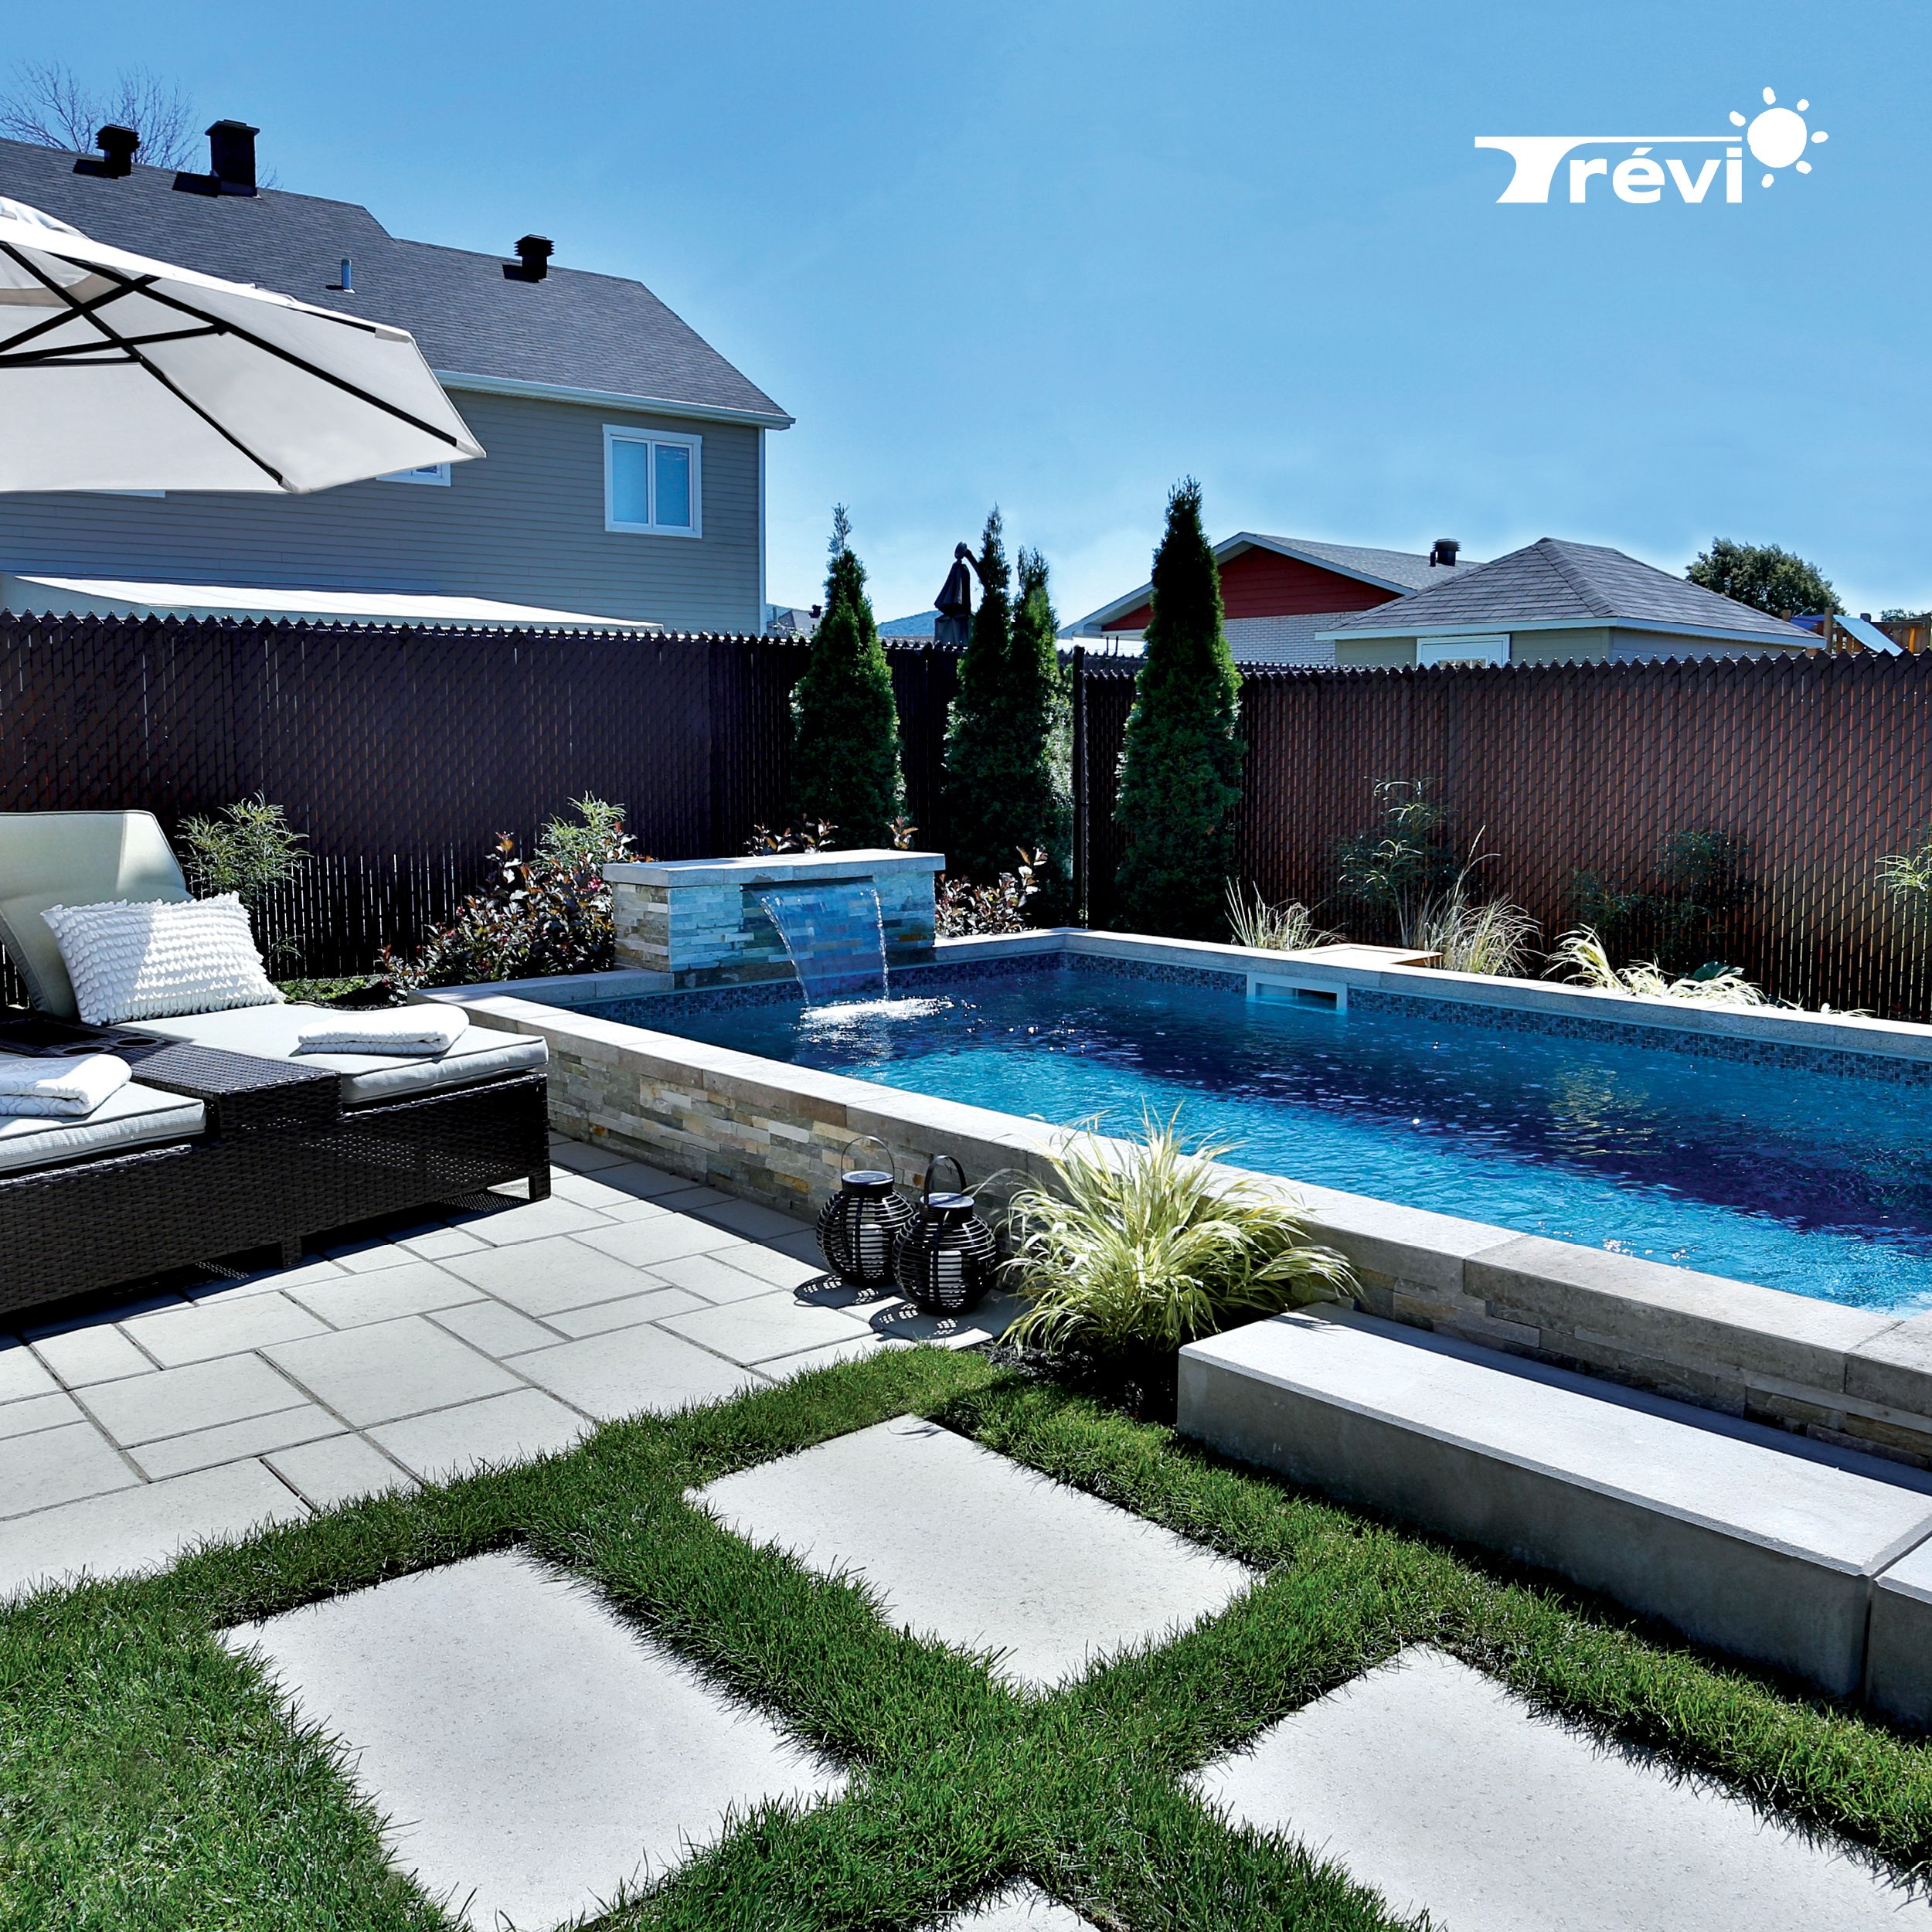 La Piscine Trevi Europea Est La Piscine Ideale Pour Ceux Qui Recherchent Un Look Moderne Et Raffine Cette P Outdoor Pool Area Vinyl Pools Inground Pool Colors